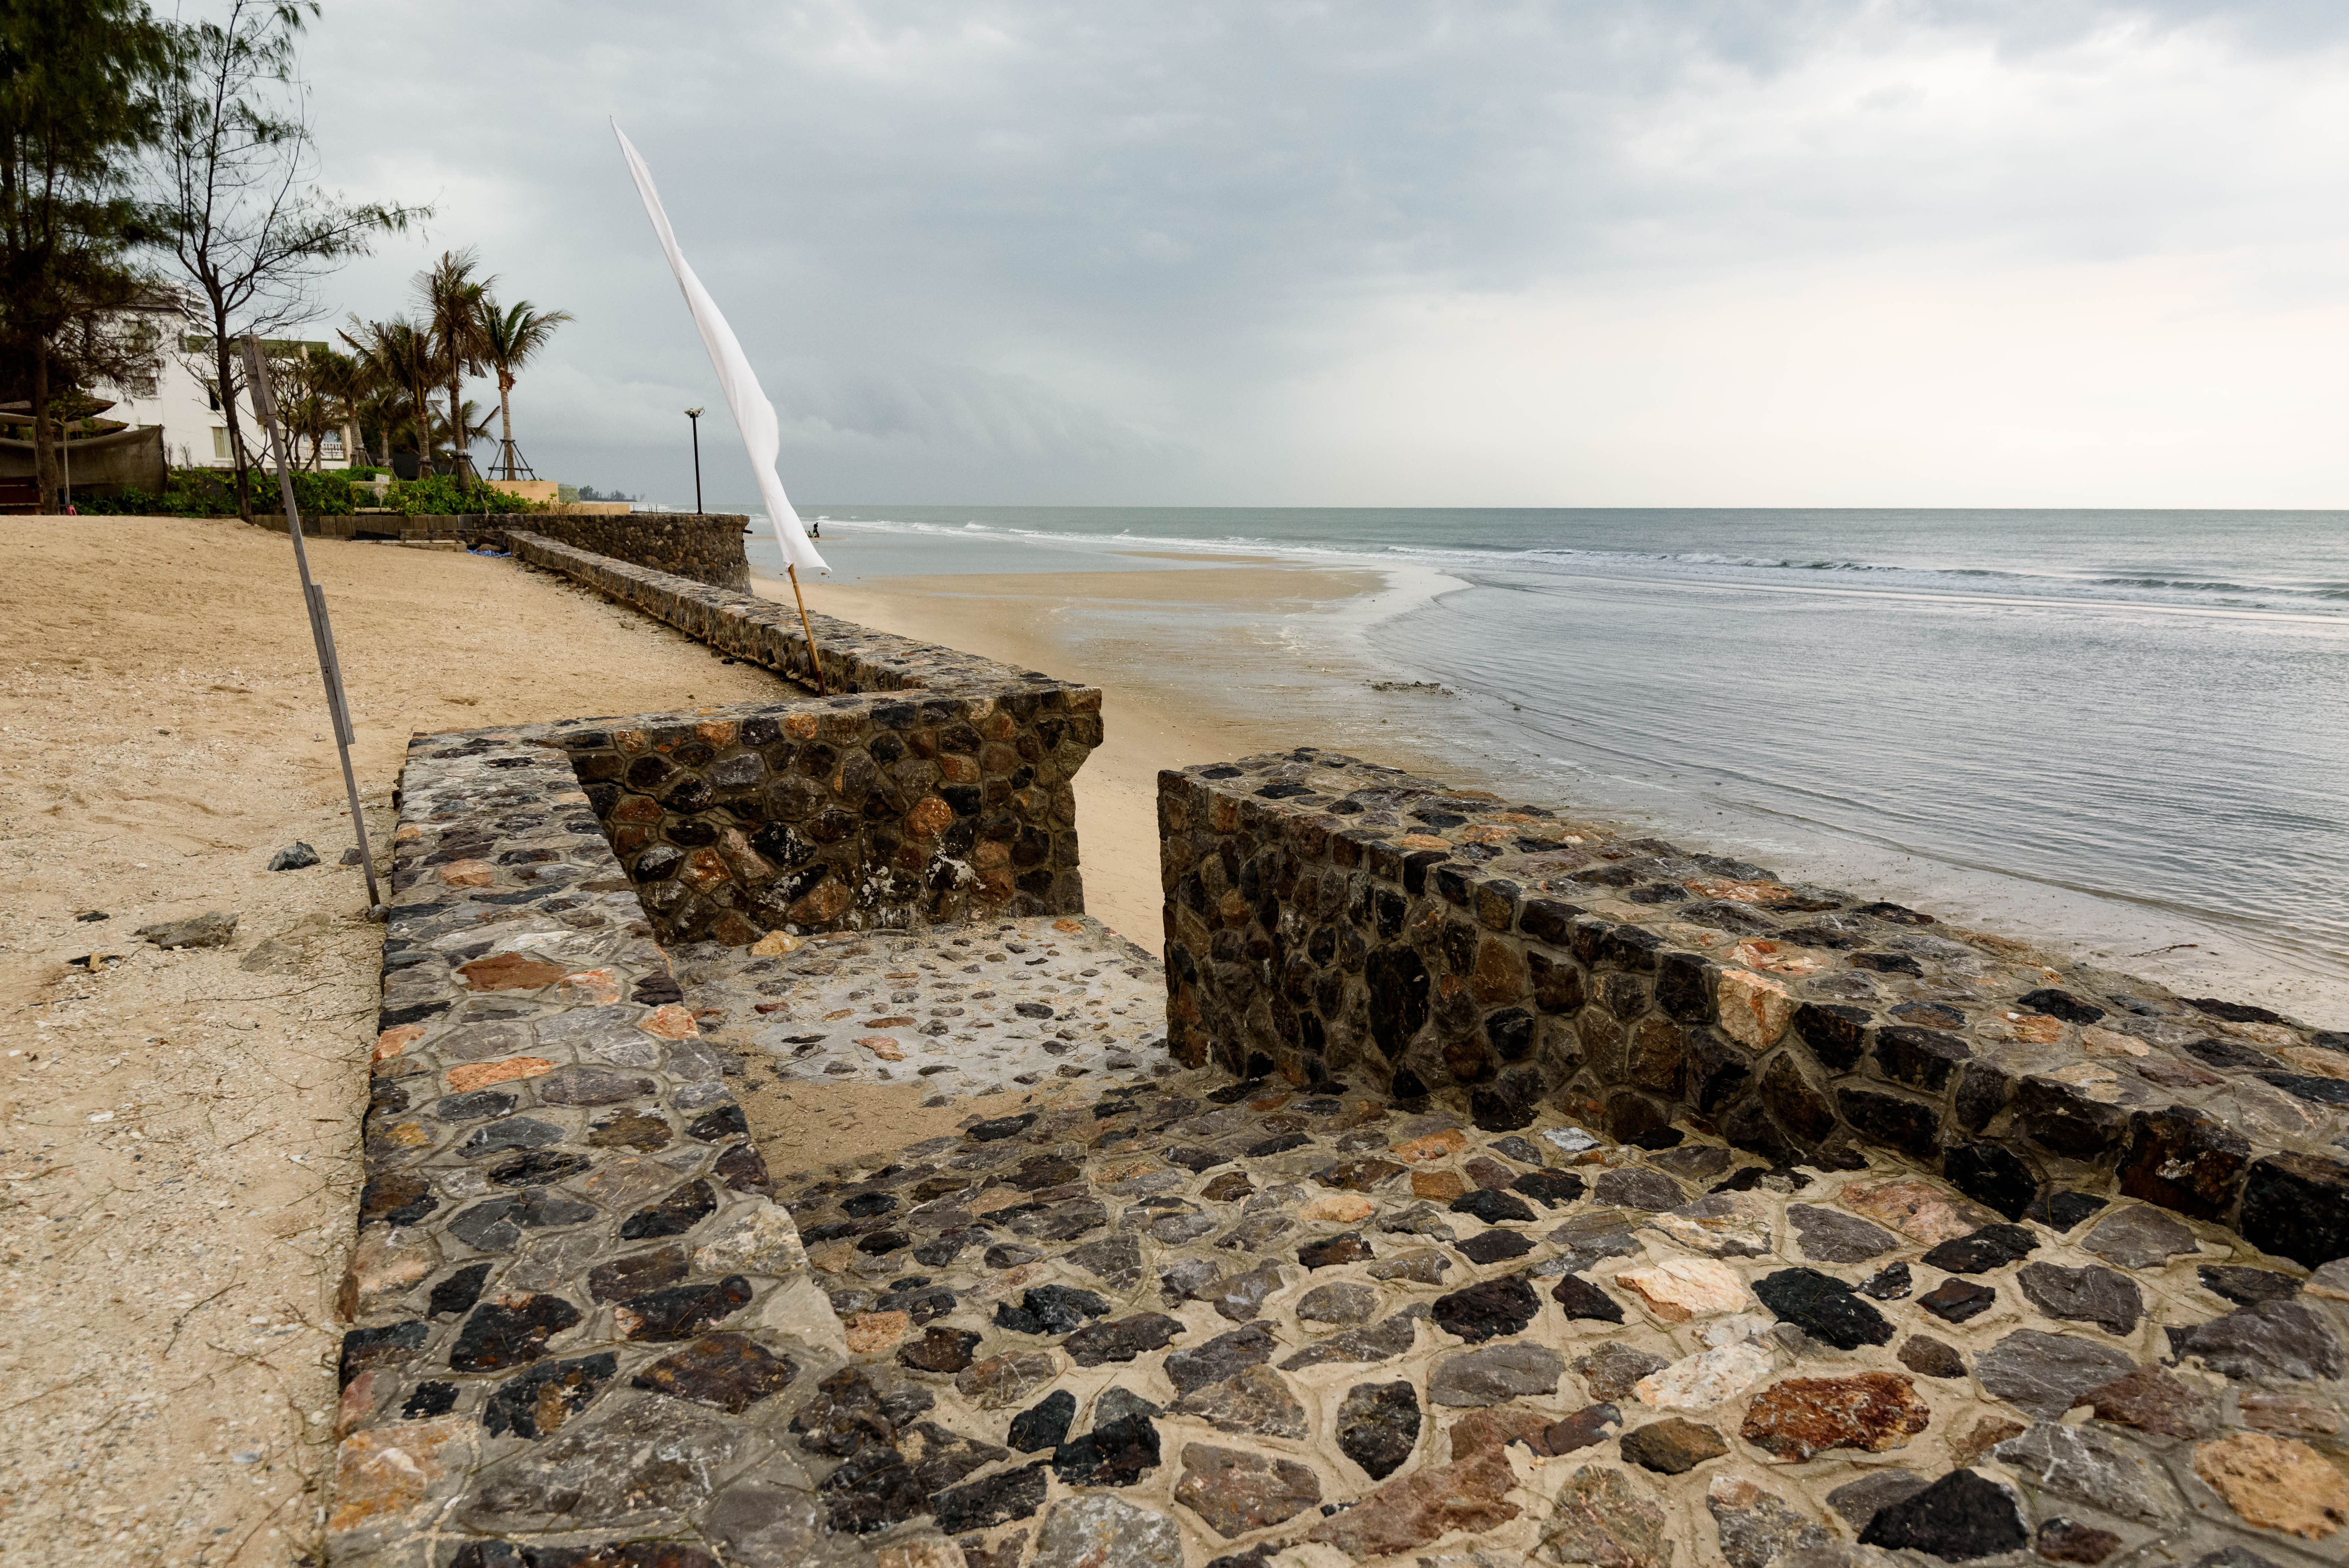 Sea wall at the so sofitel hua hin resort on cha-am beach, thailand. photo